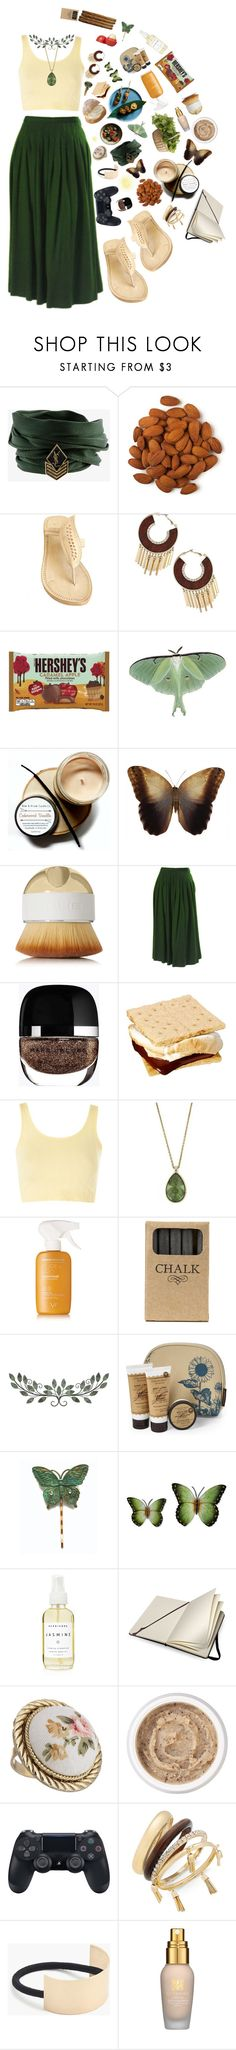 """this level is over"" by barr4cuda ❤ liked on Polyvore featuring Yves Saint Laurent, Thalia Sodi, Hershey's, Artis, Marc Jacobs, Topshop, 1928, Vernon François, Jayson Home and Tuscan Hills"